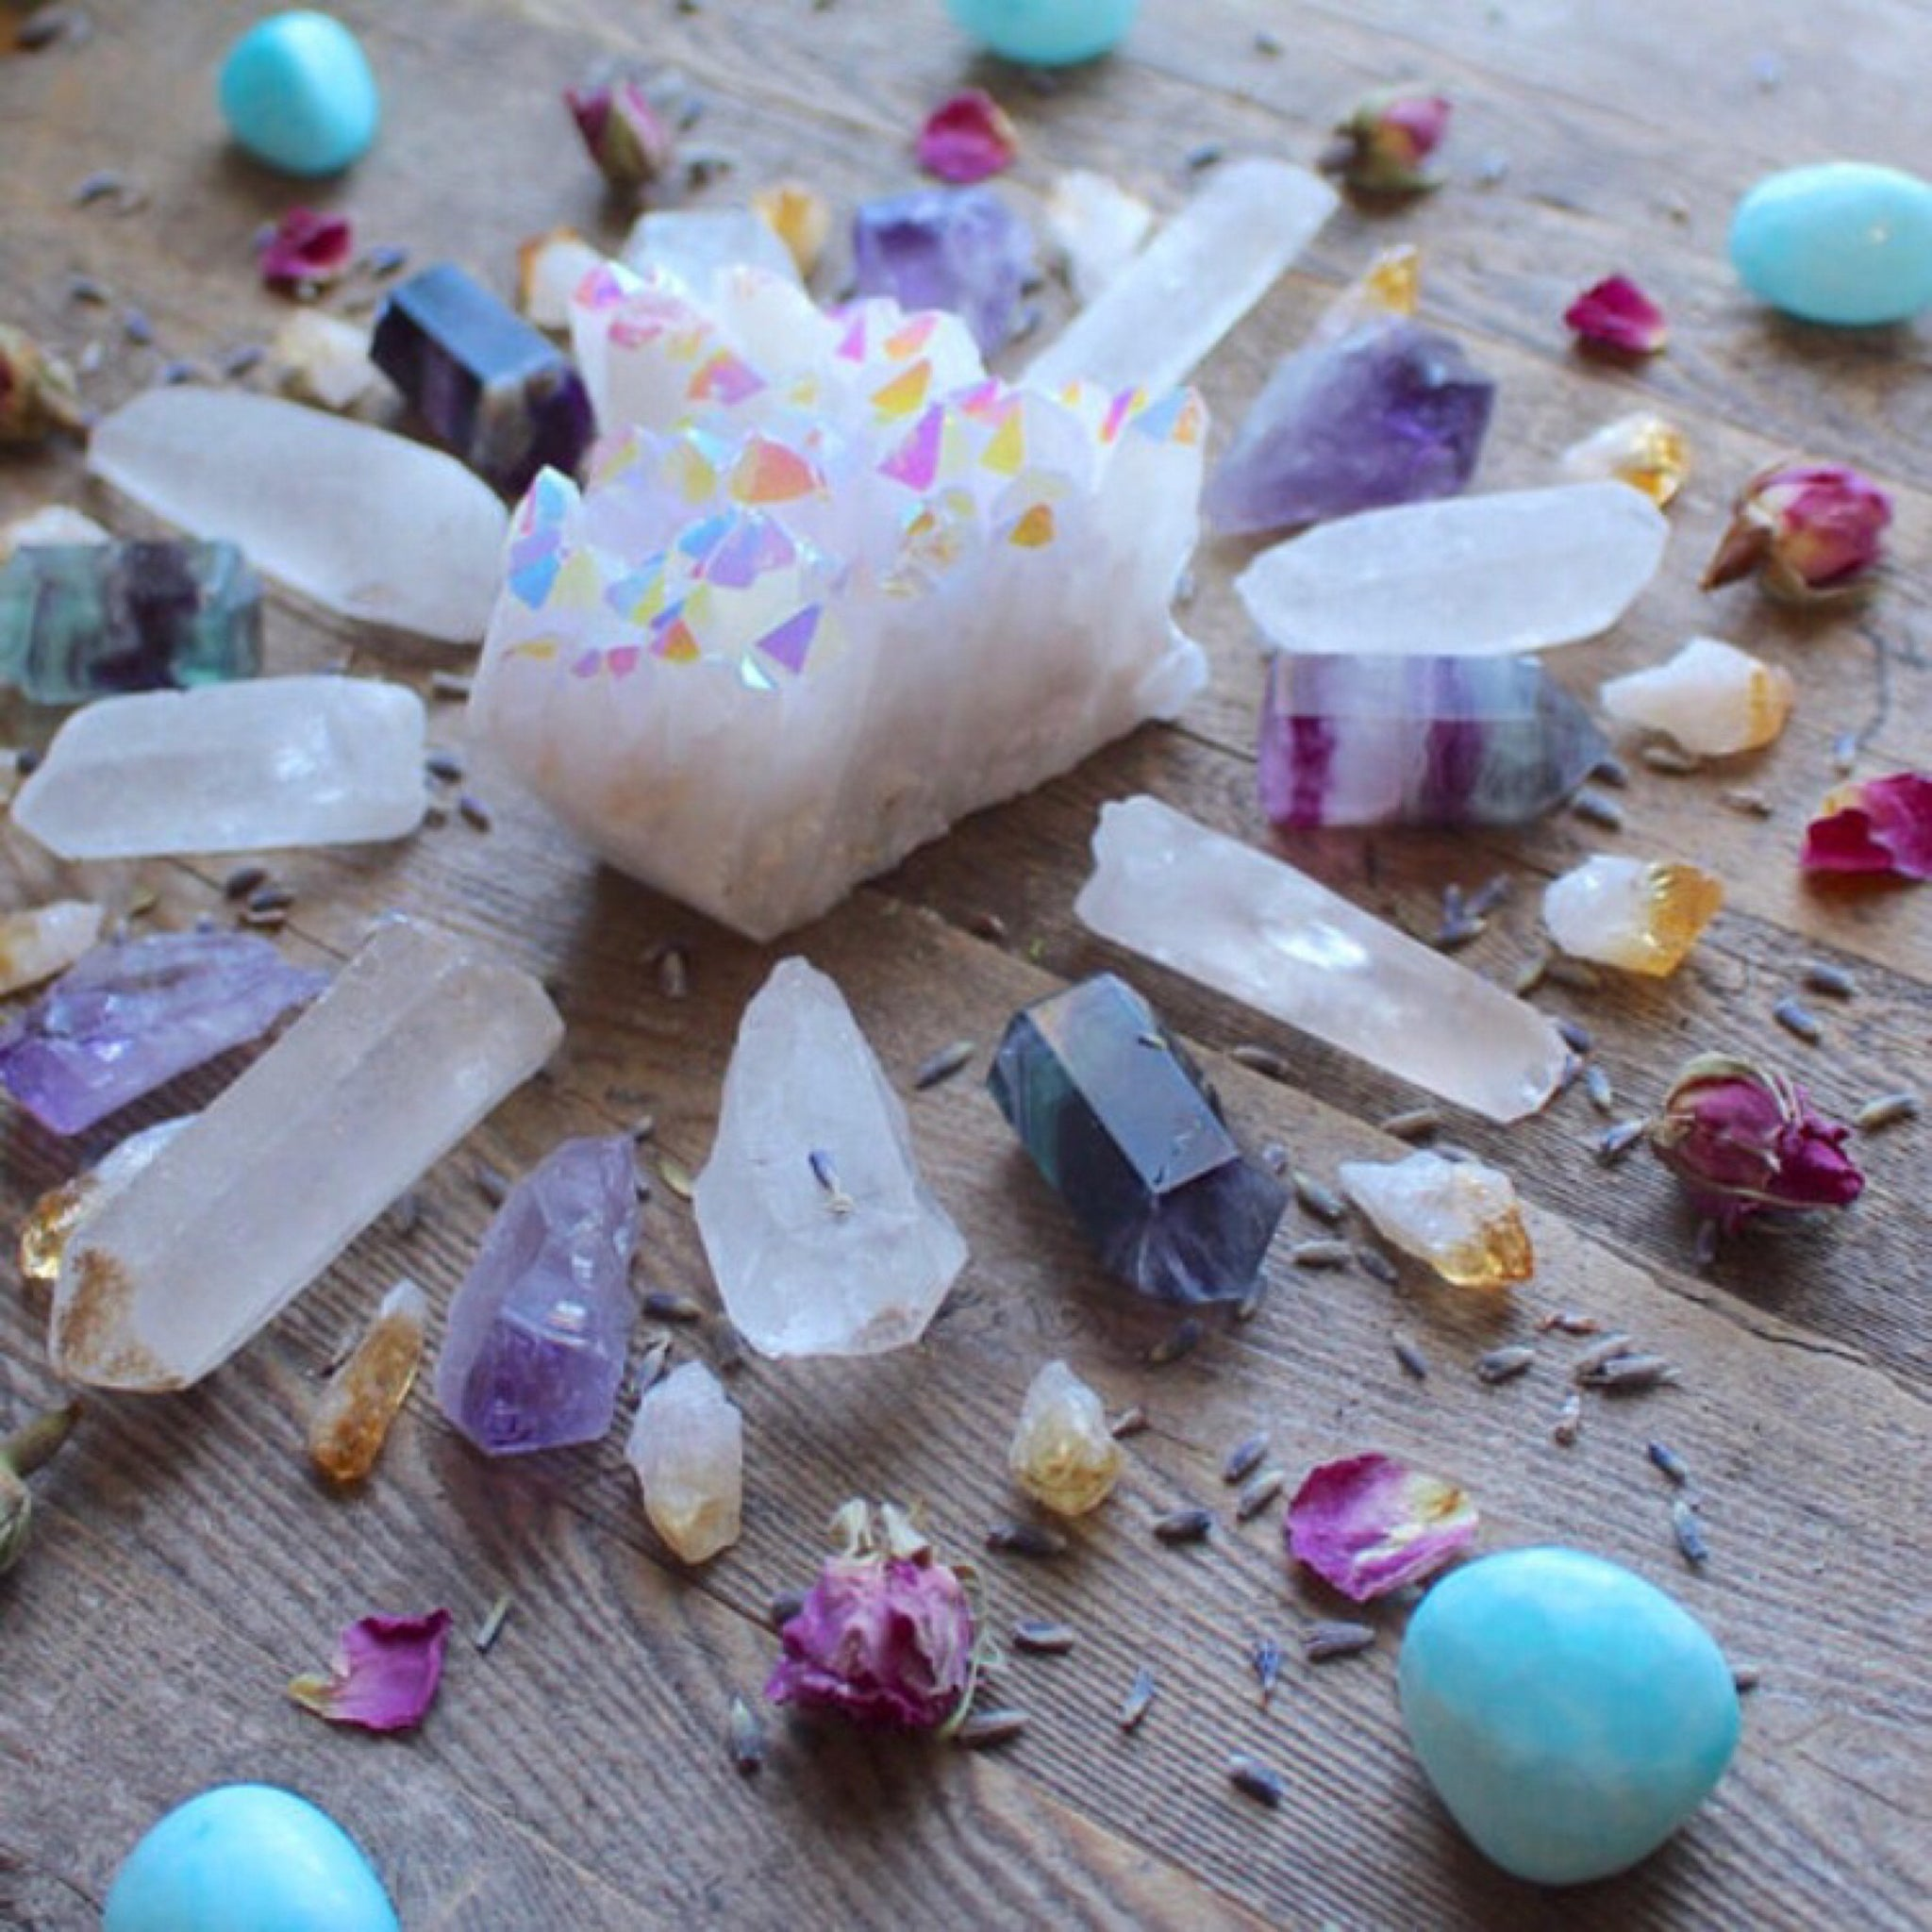 WORKSHOP | Crystal eCourse | Healing Crystals and Stones course | Mini Email Class | Learn About Healing Crystals Holistic Healing